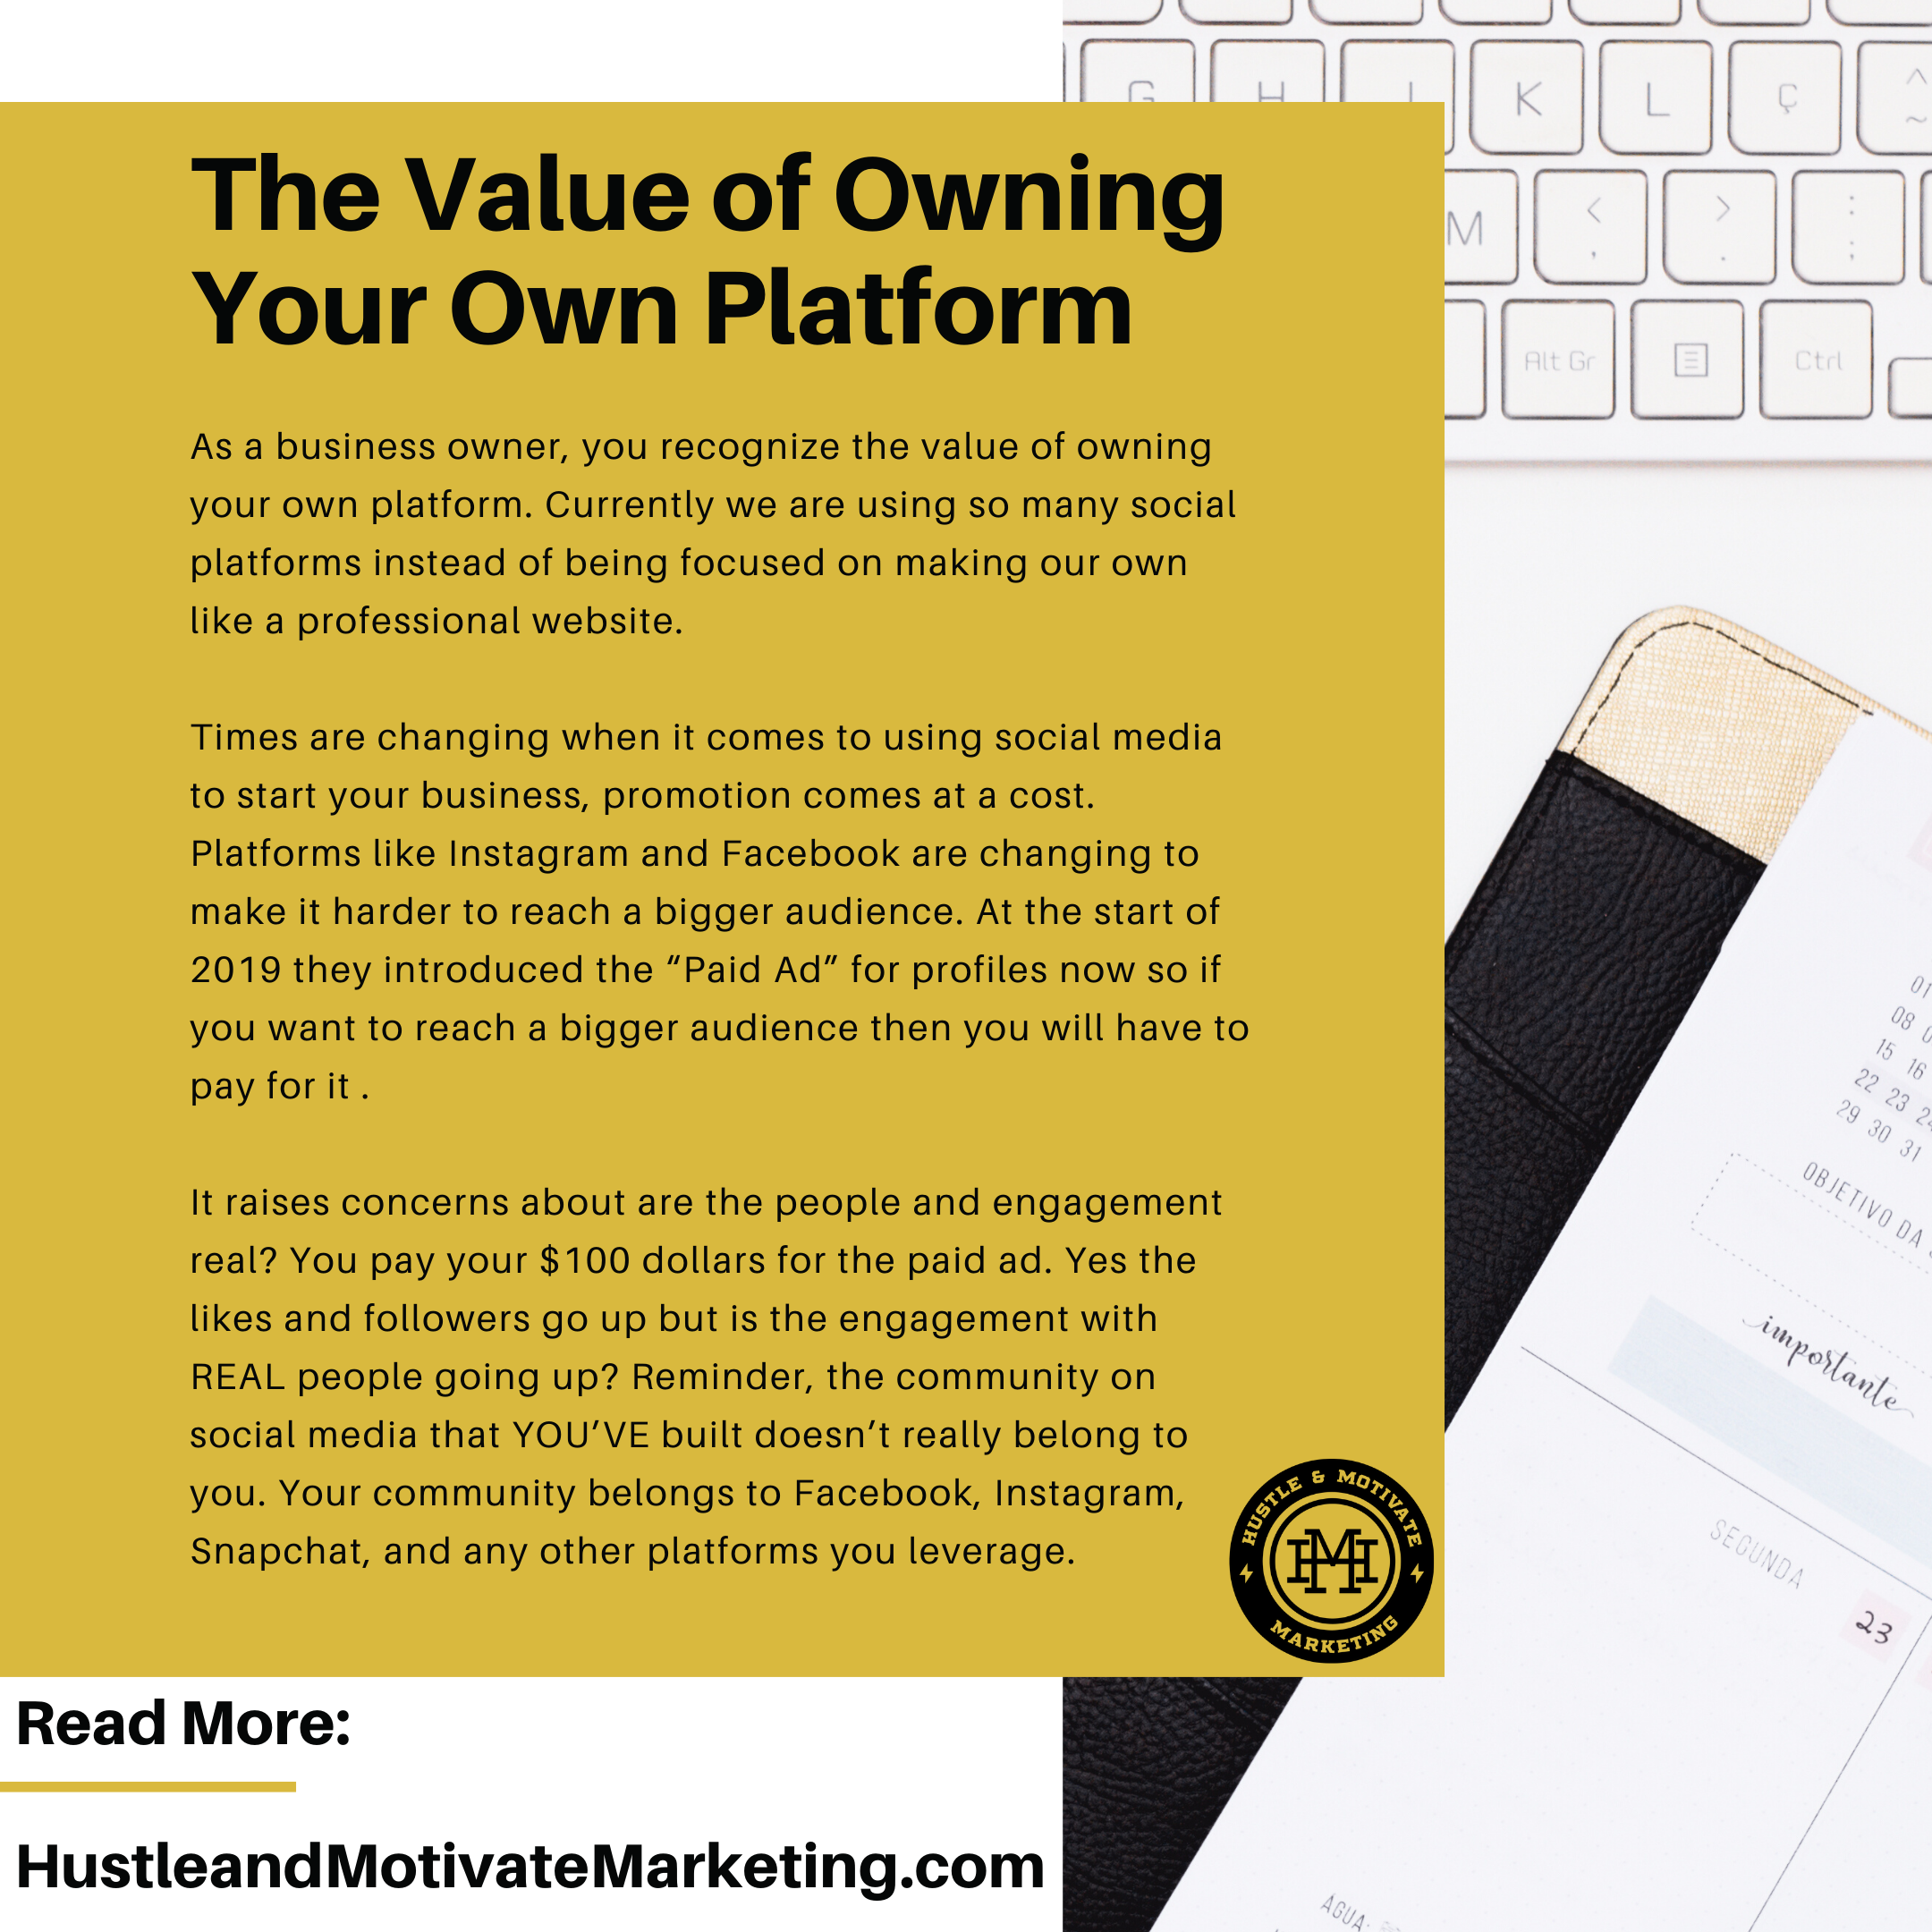 The Value of Owning Your Own Platform